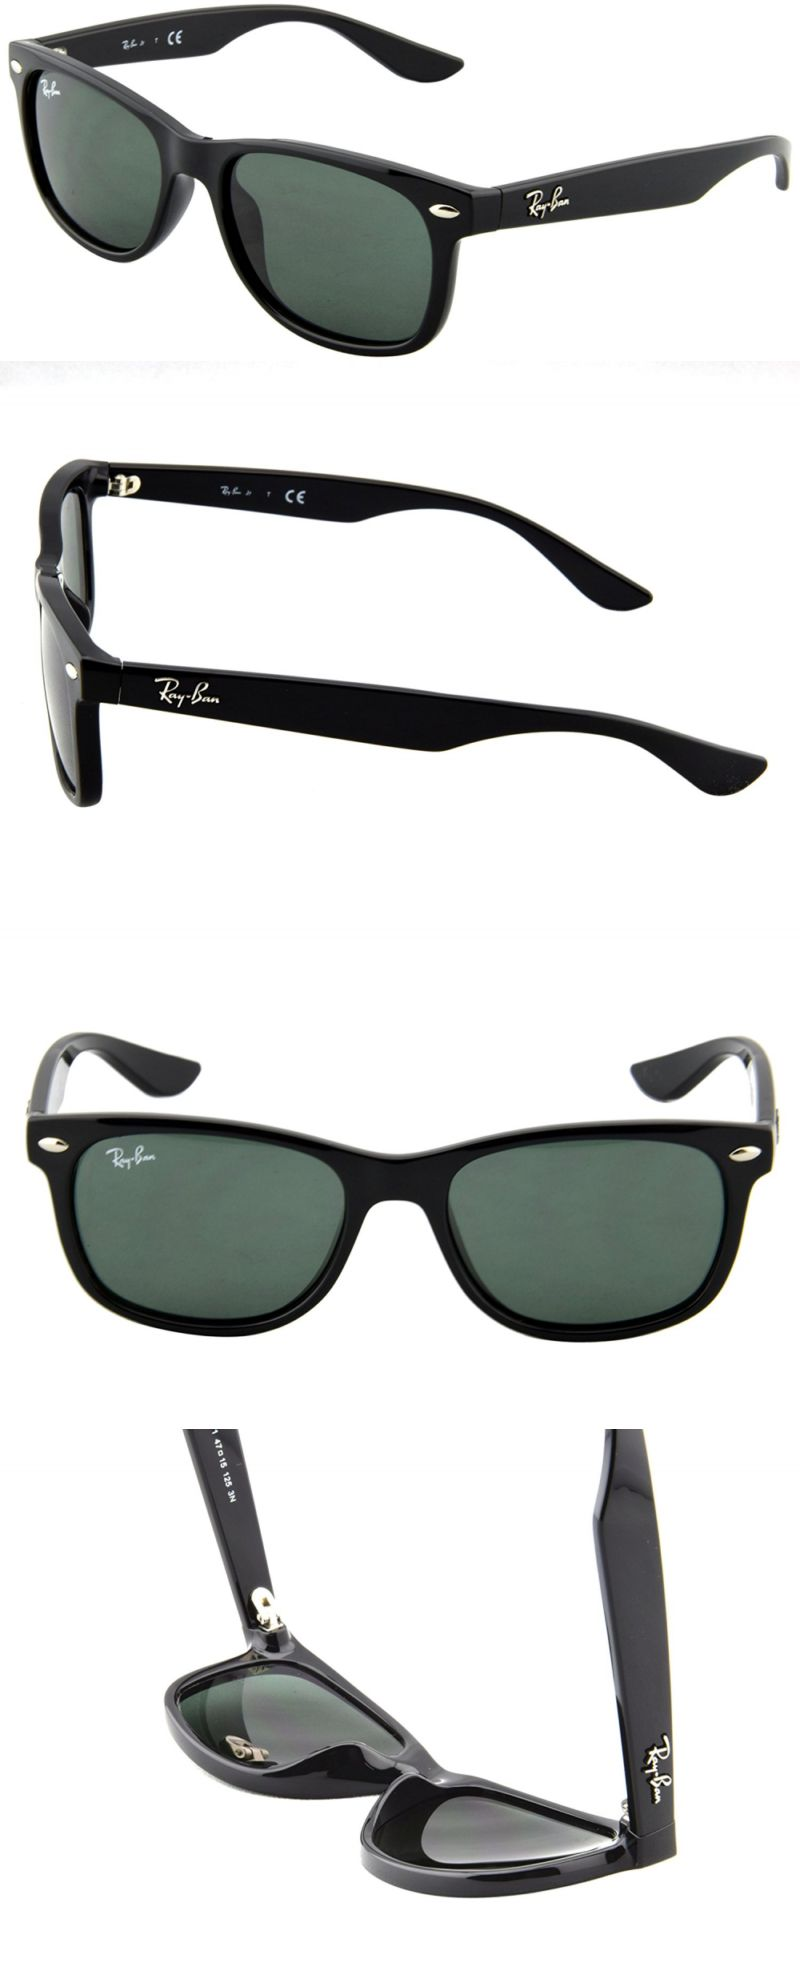 1ab71ea489 Sunglasses 131411  Ray-Ban Junior Rj9052s Square Sunglasses -  BUY IT NOW  ONLY